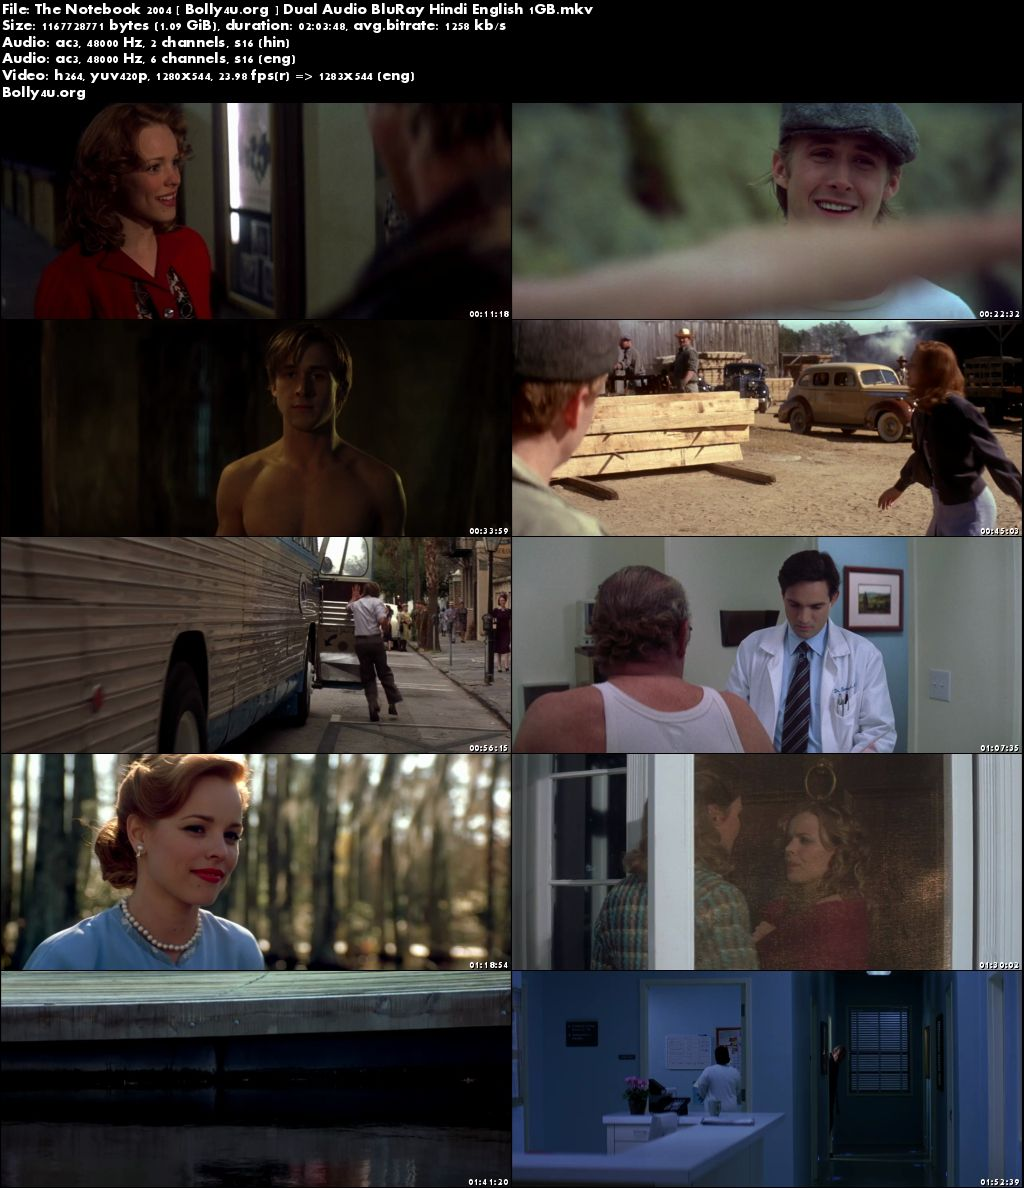 The Notebook 2004 BluRay 1Gb Hindi Dual Audio 720p Download